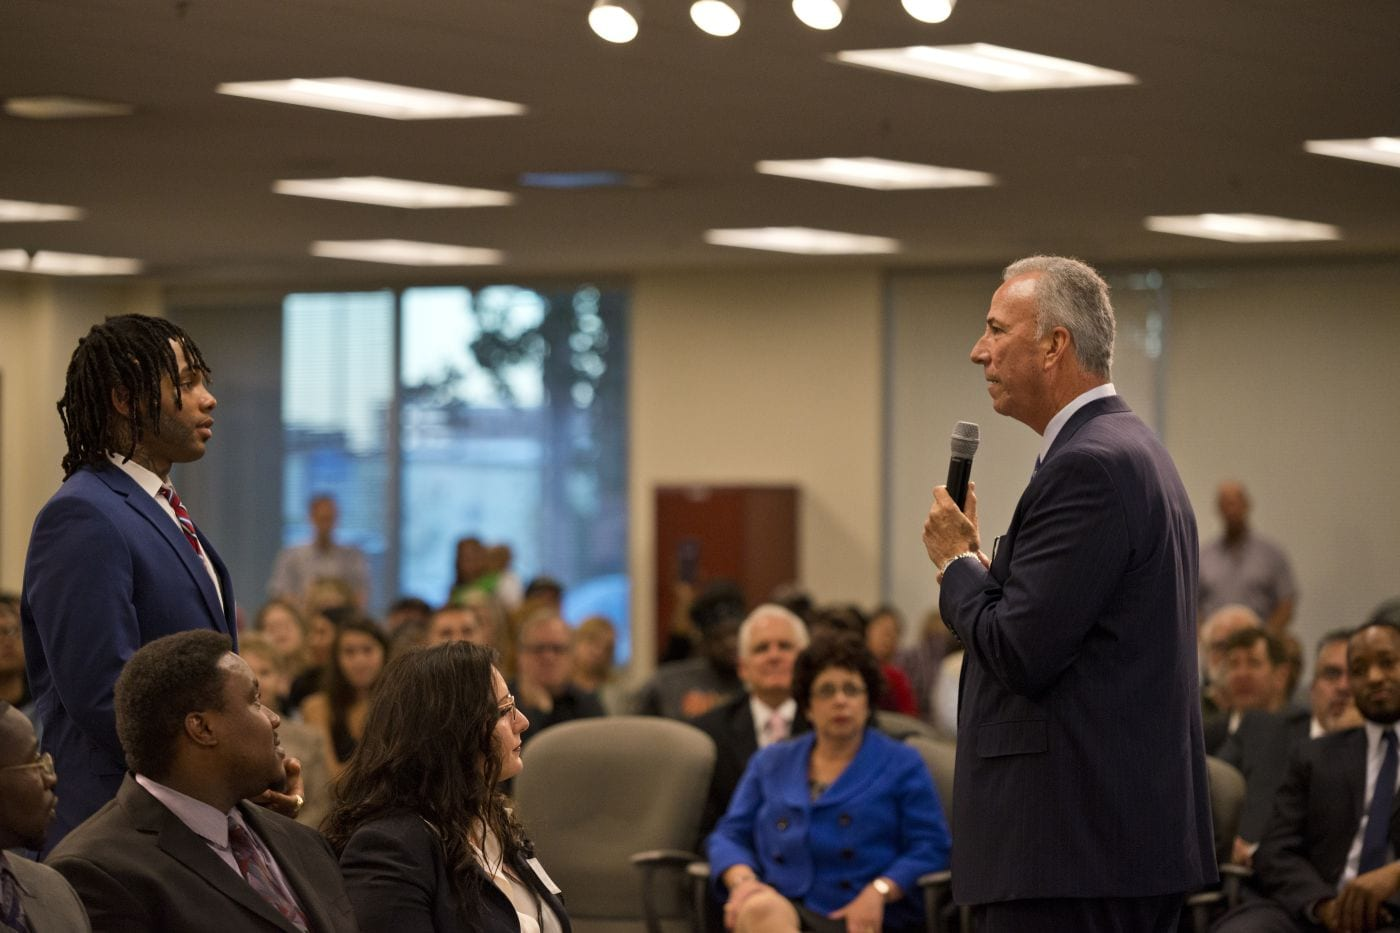 CLARK COUNTY DISTRICT ATTORNEY STEVE WOLFSON TO JOIN HOPE FOR PRISONERS BOARD OF DIRECTORS